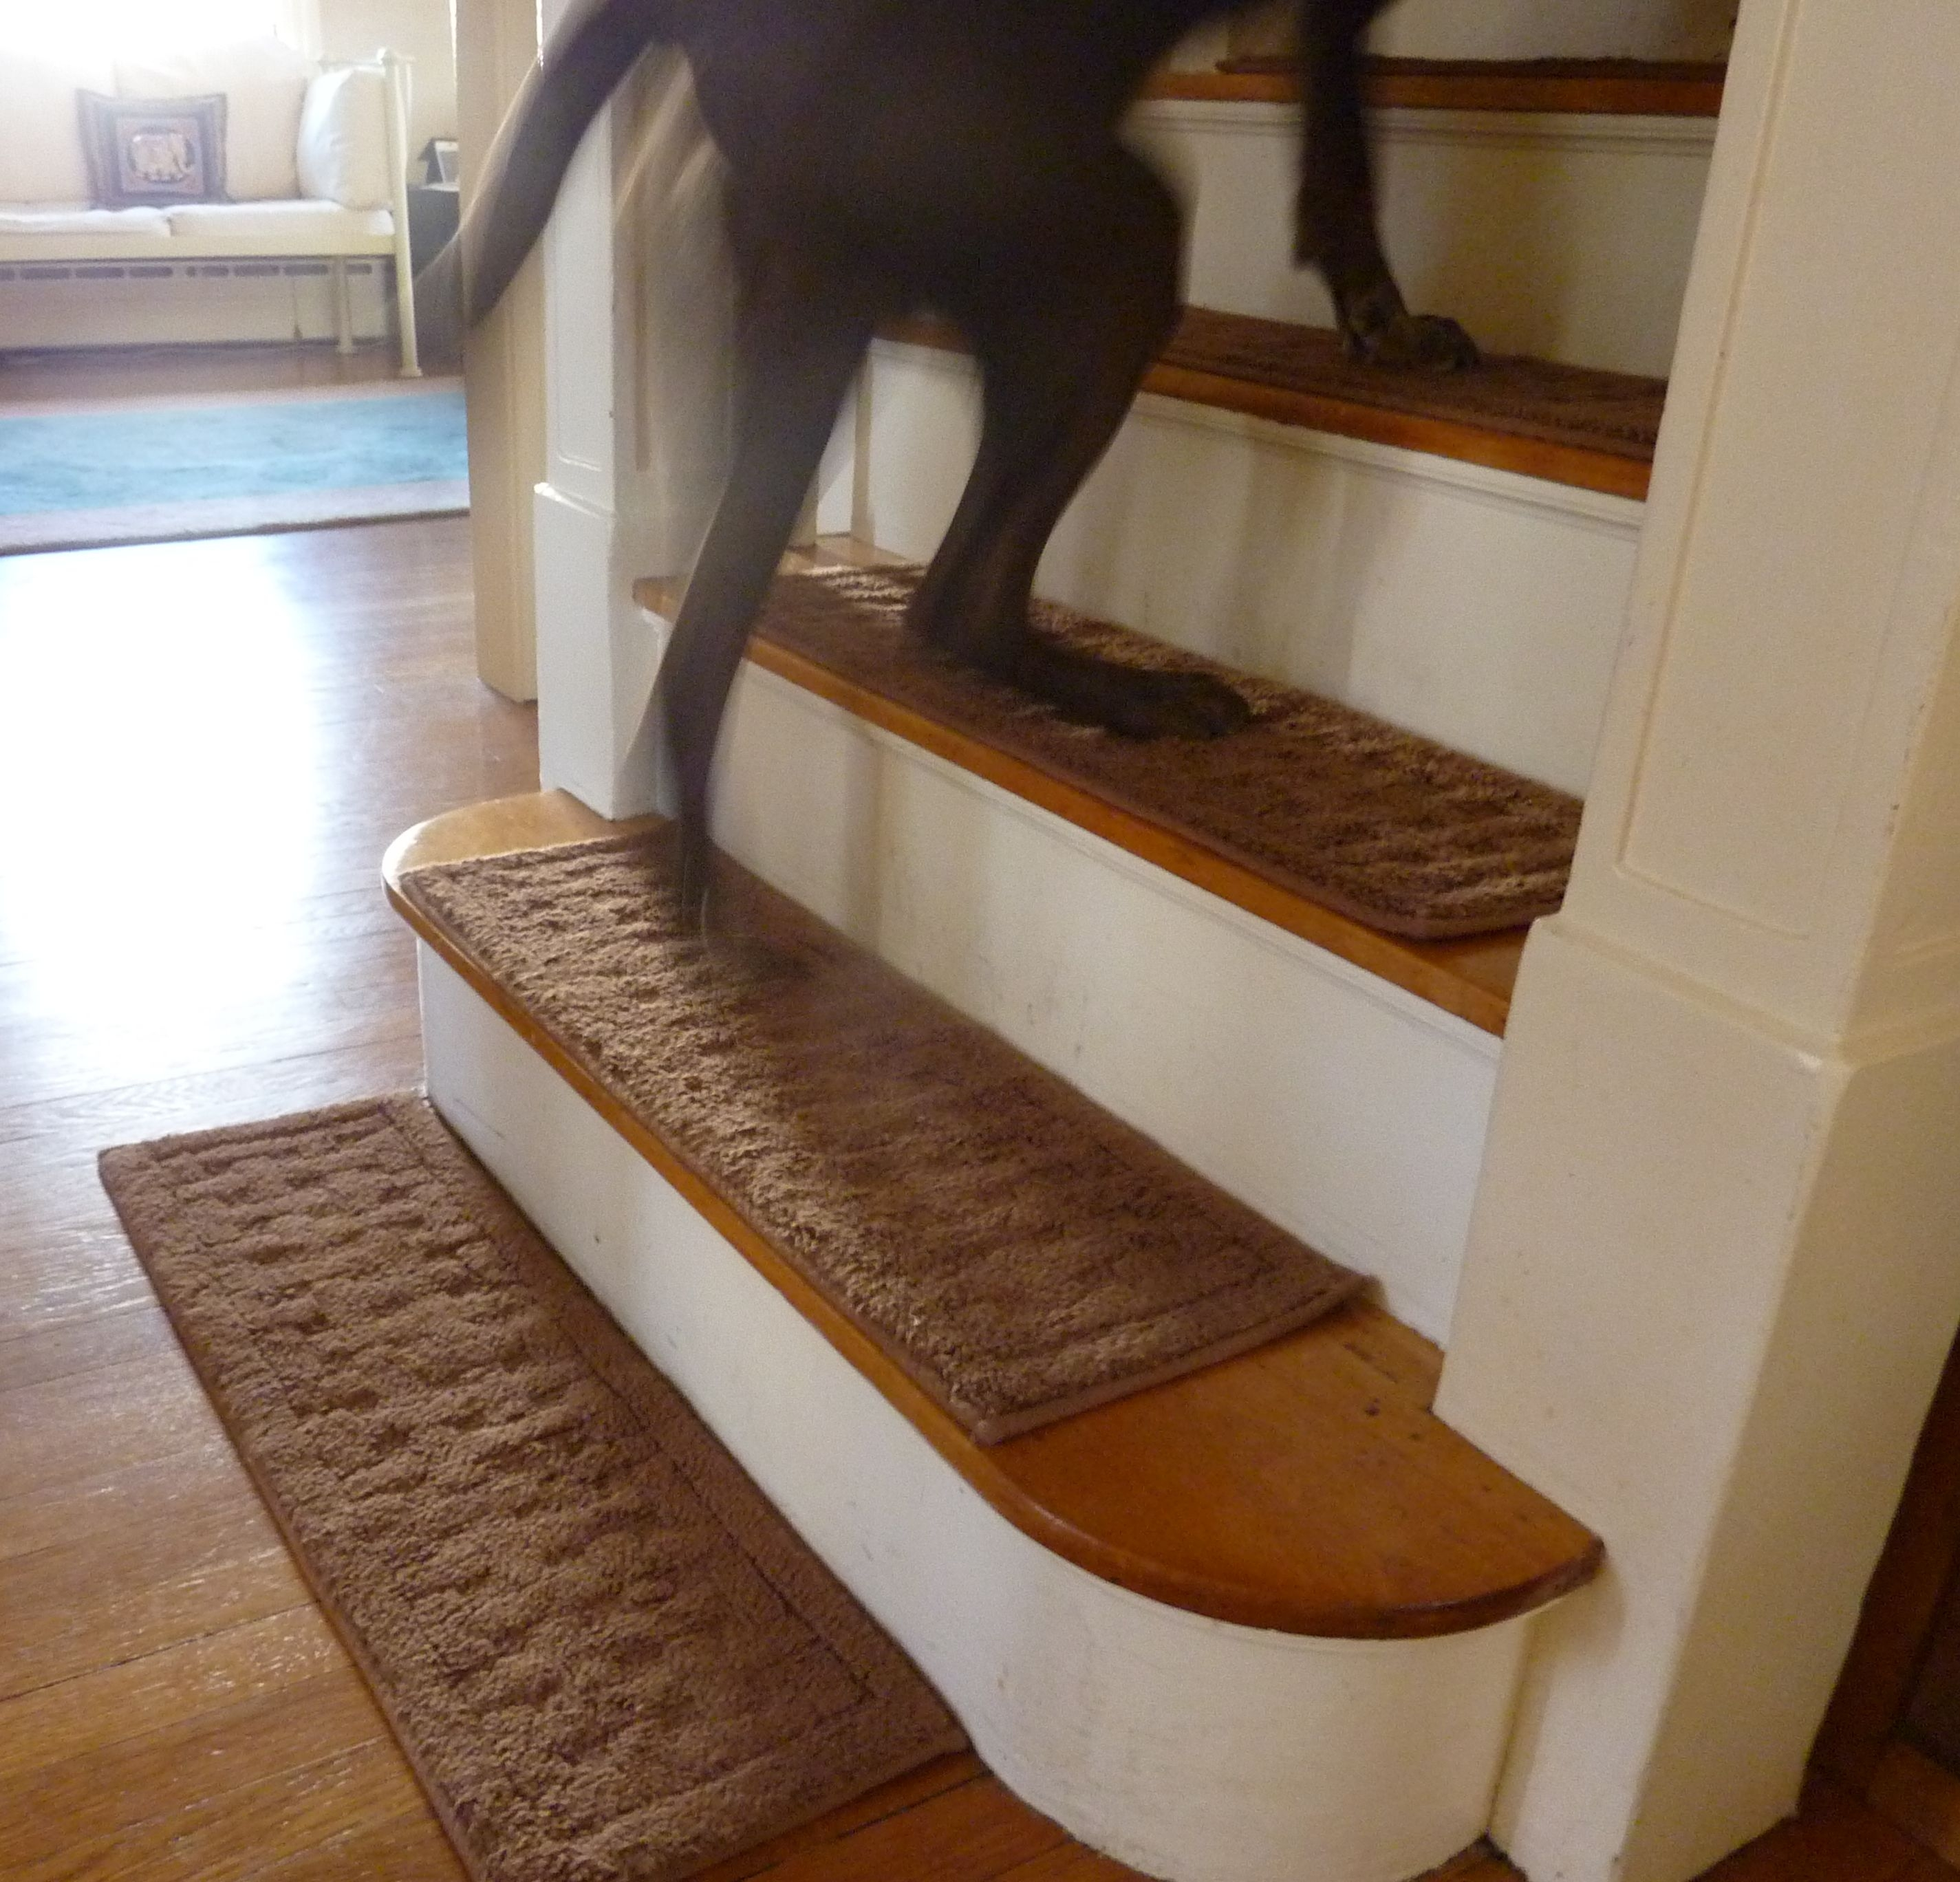 Dogs Dont Look Both Ways A Book About Life And Dogs Part 2 Pertaining To Stair Slip Guards (Image 6 of 15)